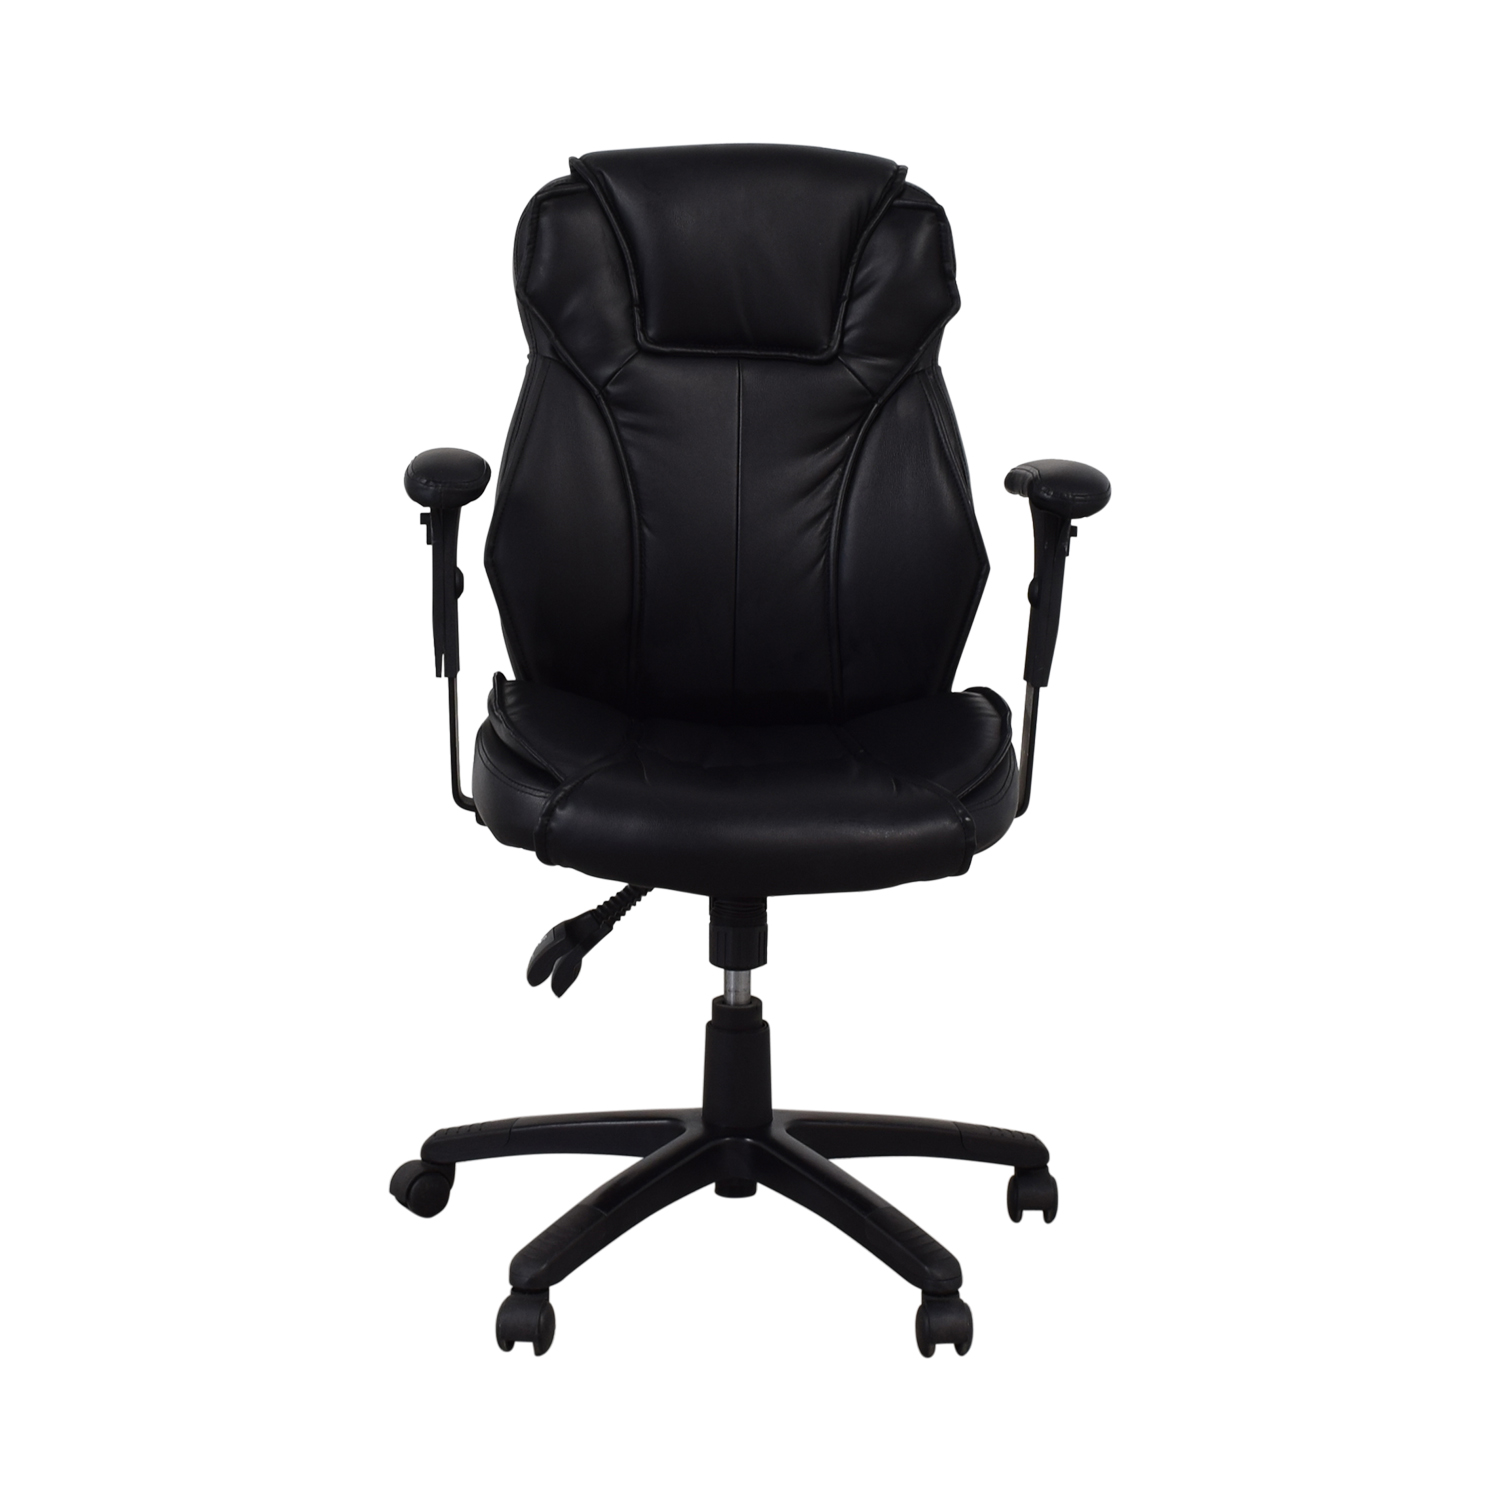 Black Office Chair coupon